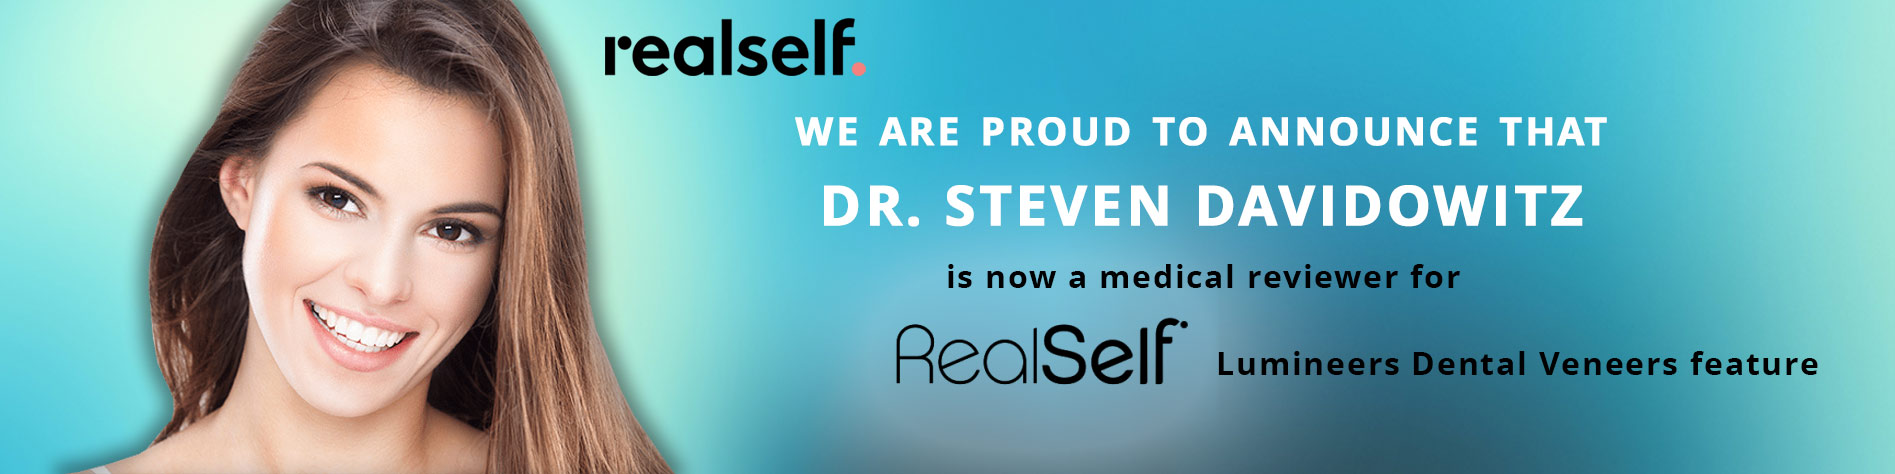 realself - we are proud to announce that dr. Steven Davidowitz is now a medical reviewer for RealSelf Invisaling feature